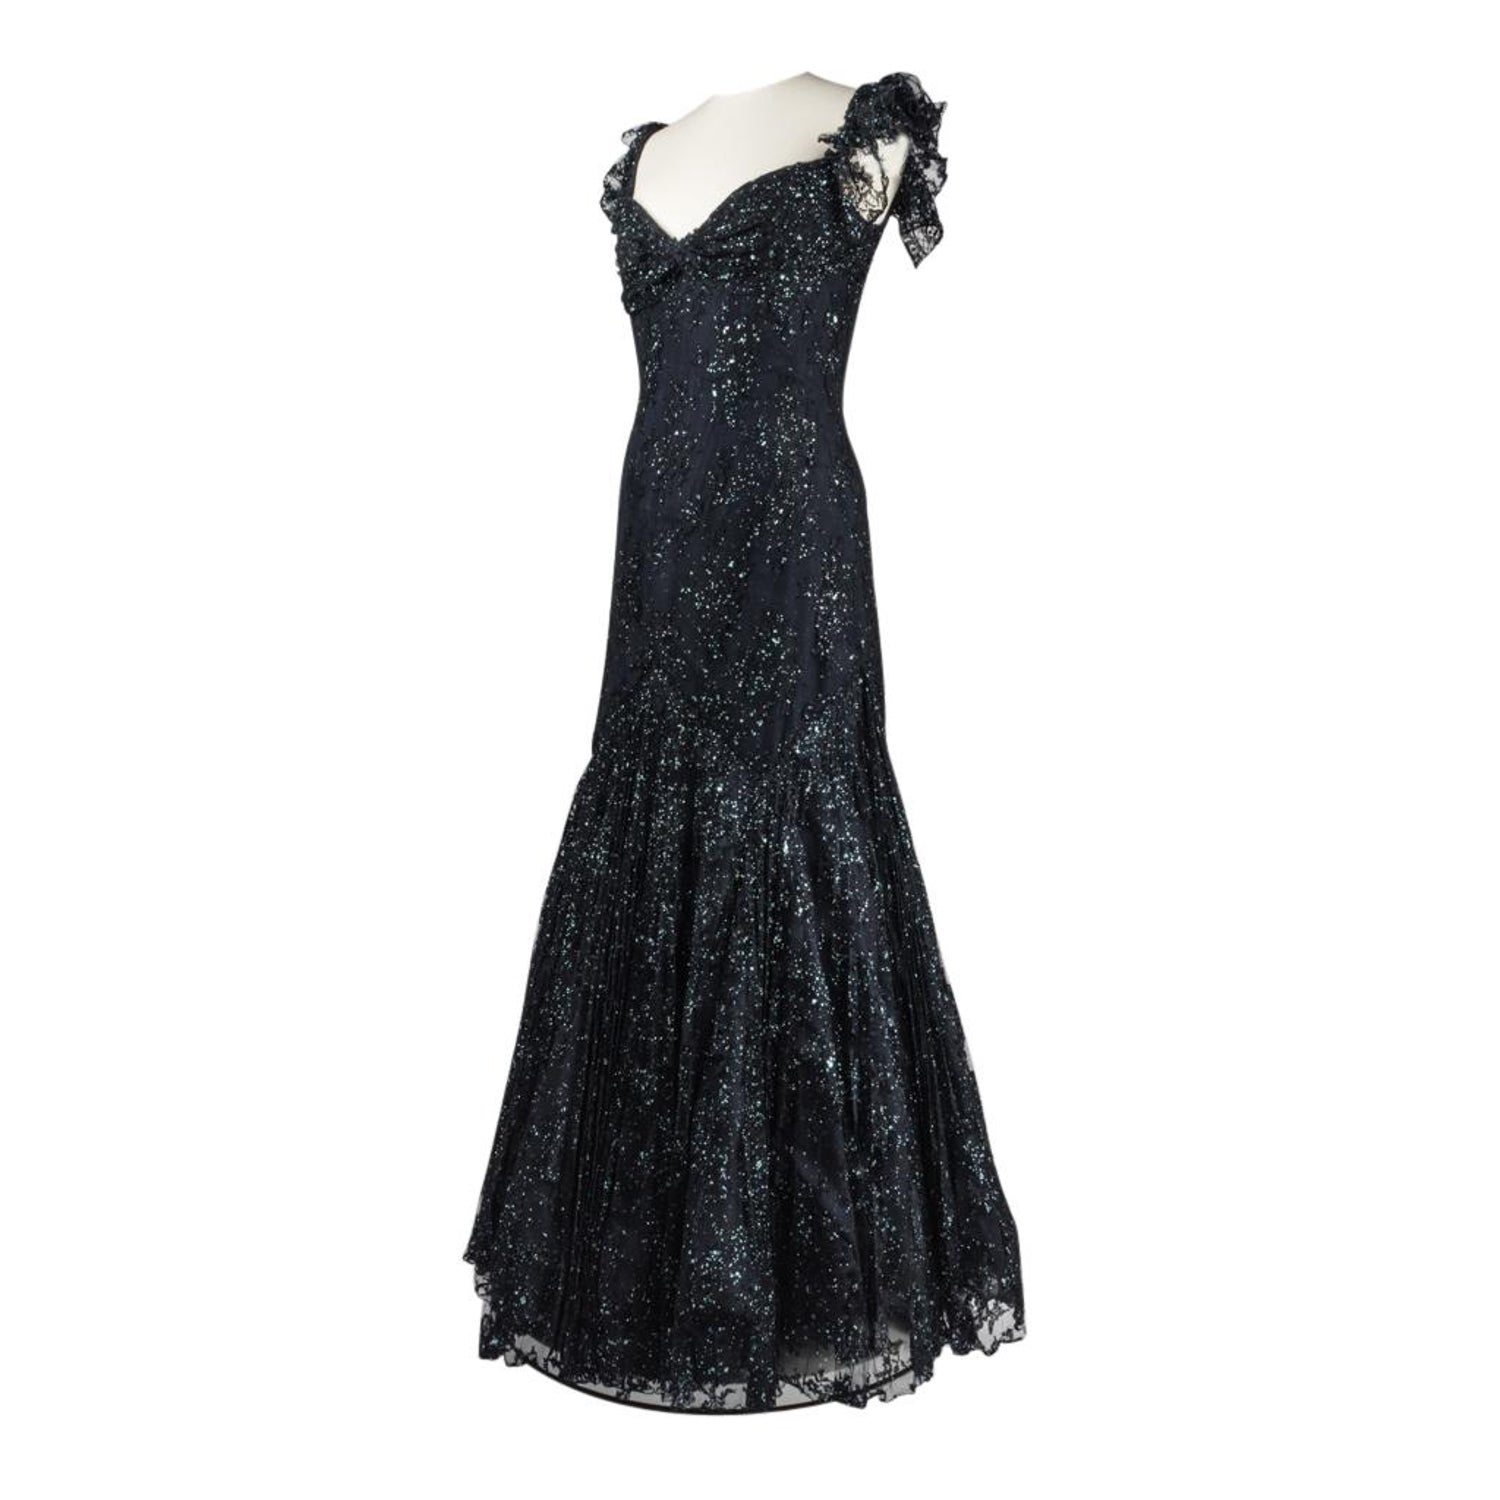 23efd096a6b Vicky Tiel Couture Gown Navy Lace Embellished Overlay Full Length FIts 8 to  10 For Sale at 1stdibs